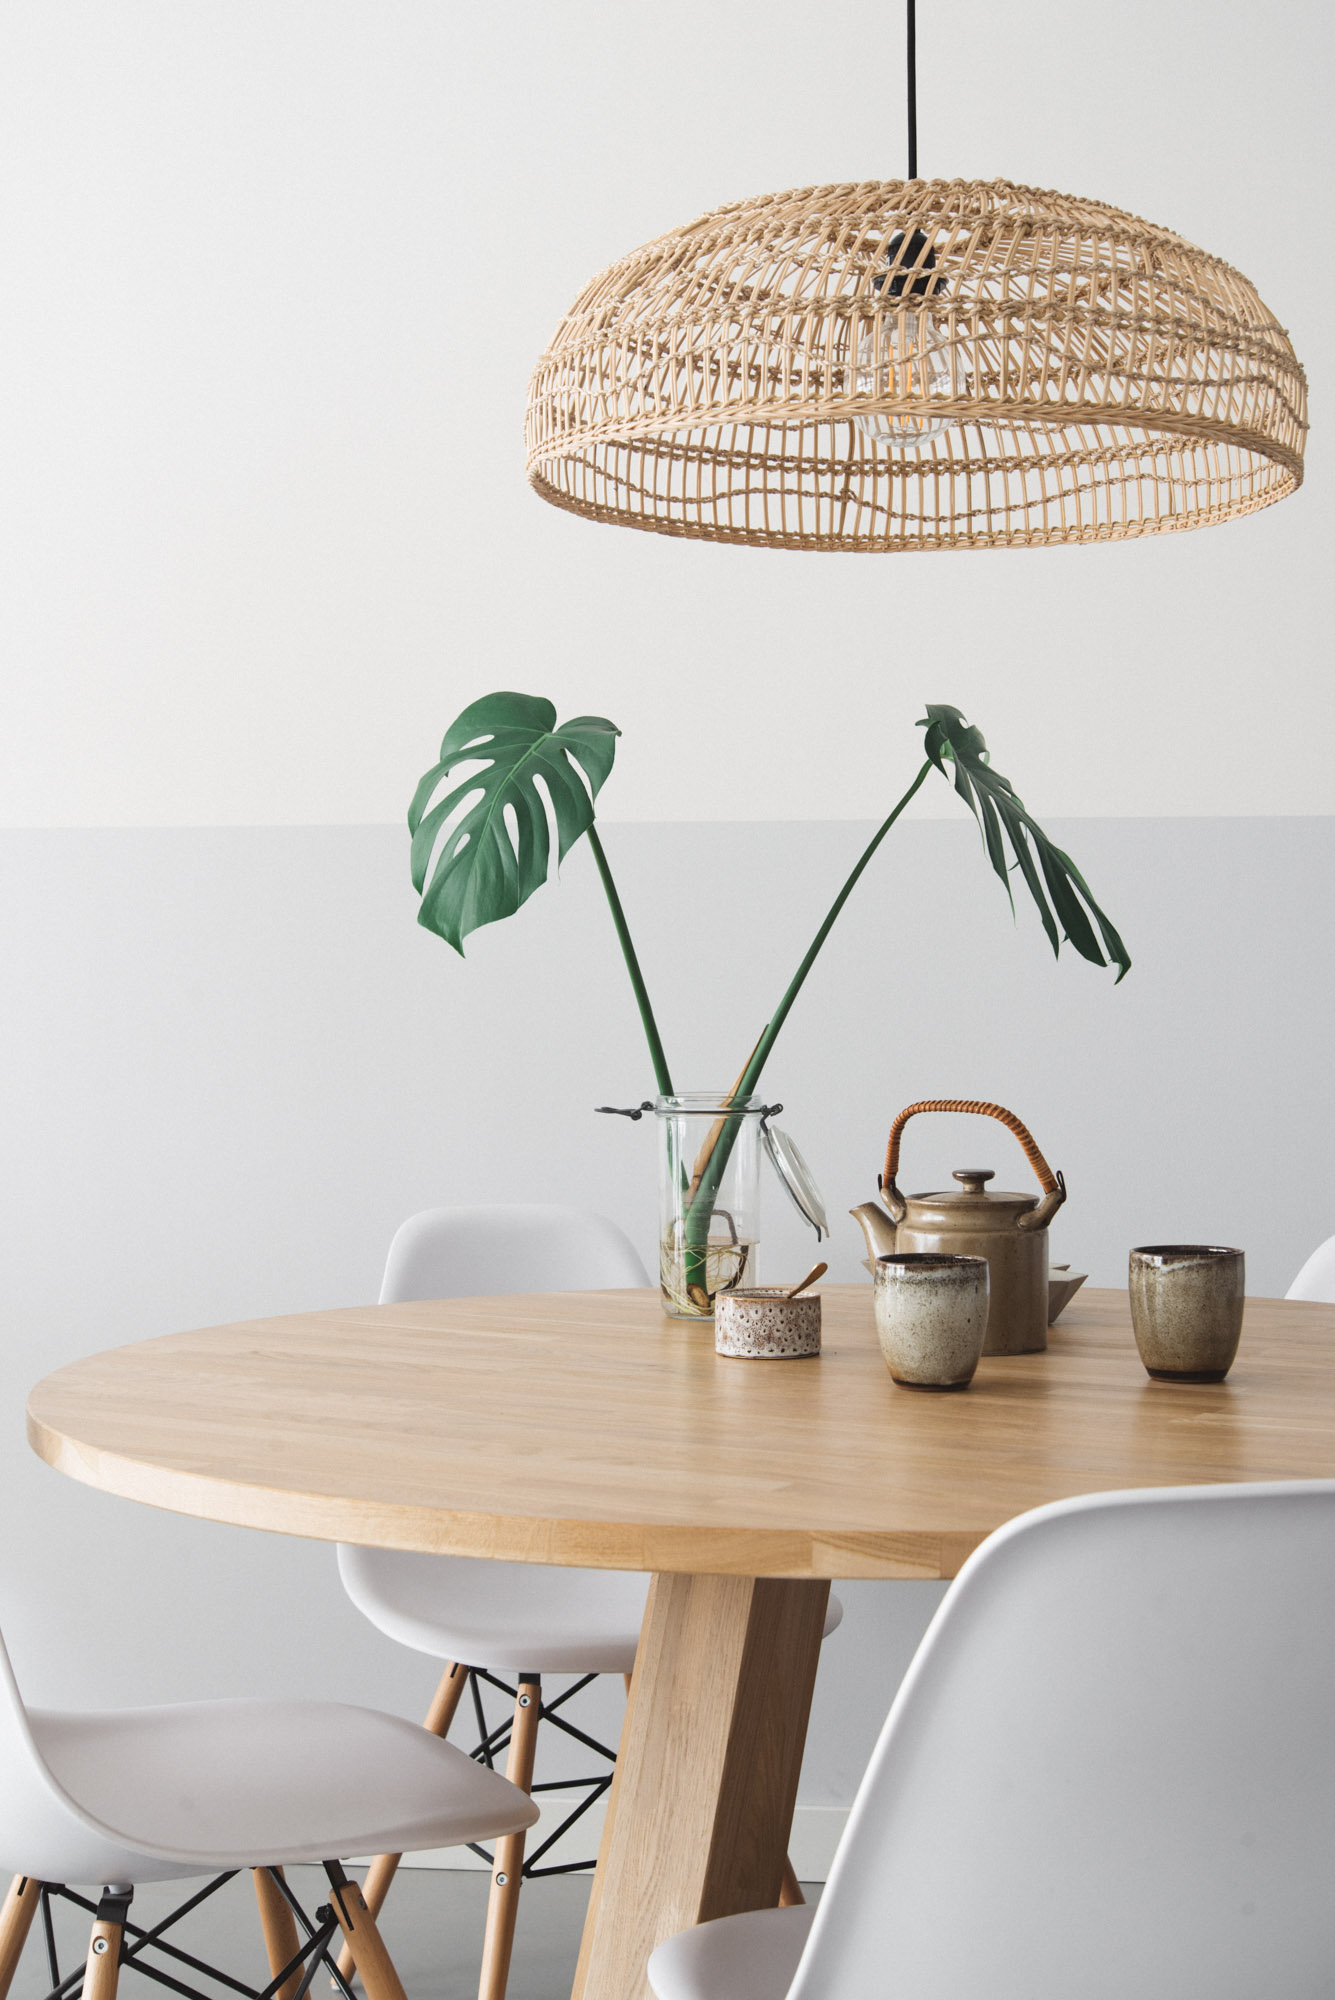 Eethoek Lamp Rieten Hanglamp Boven De Eettafel | Remade With Love